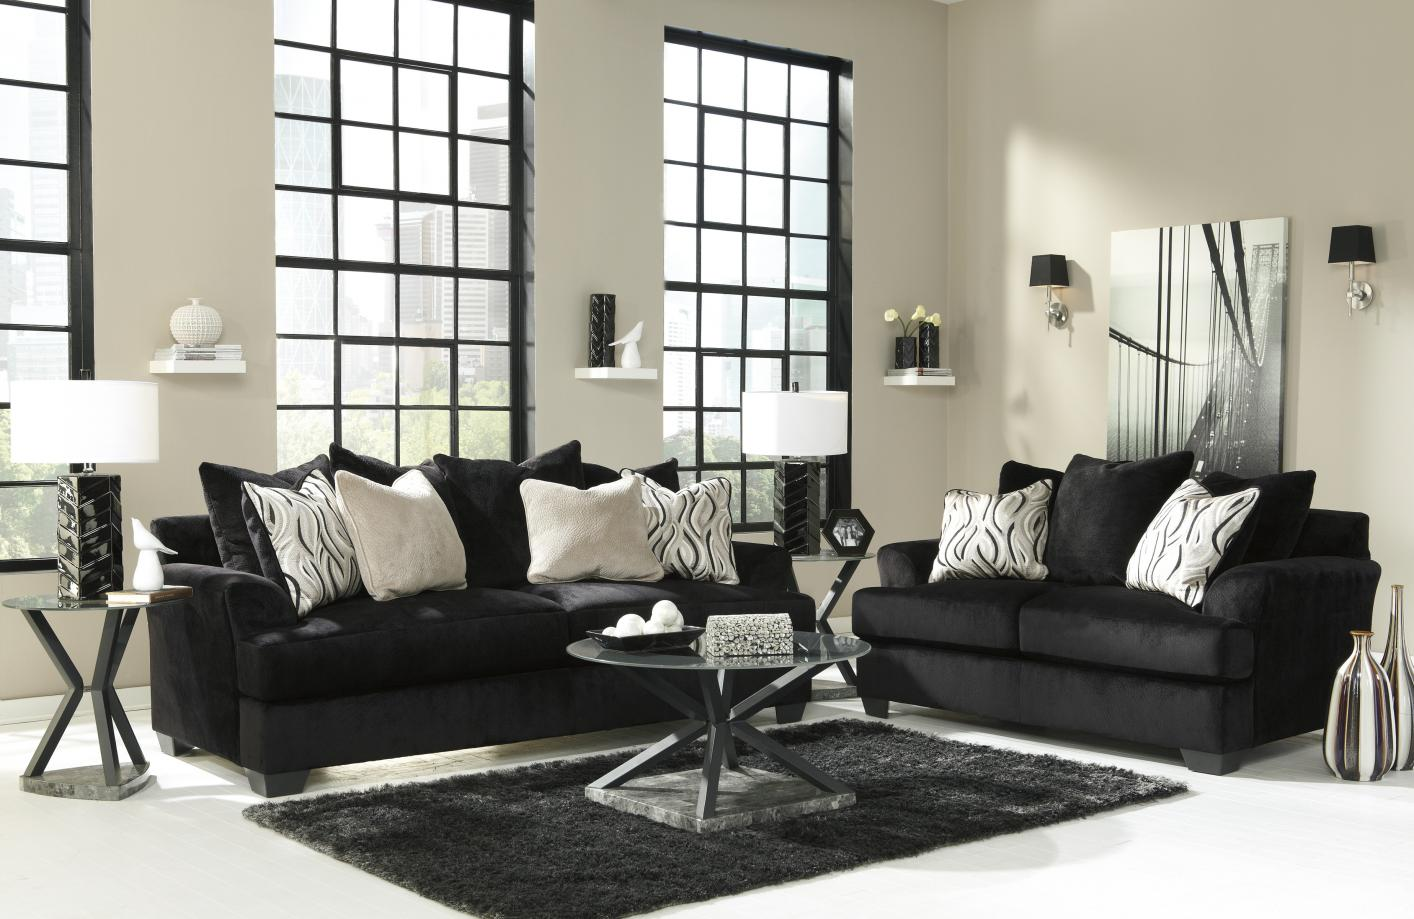 heflin black fabric sofa and loveseat set - steal-a-sofa furniture